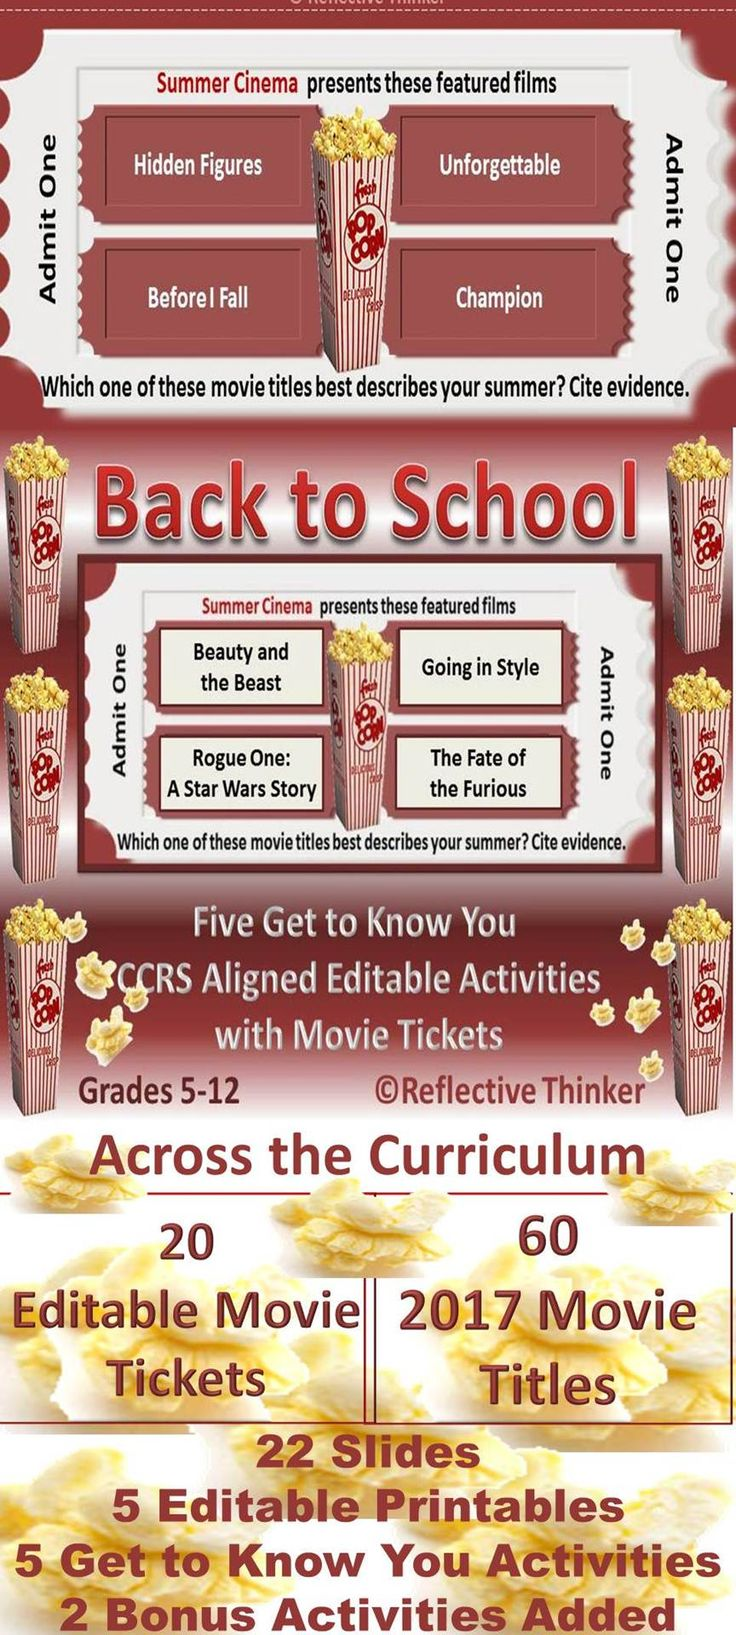 """A fun and engaging resource for back to school that can be used across the curriculum! This movie-themed resource includes five """"Get to Know You"""" editable movie activities with instructions and 5 editable printables. Two bonus activities were added to this resource in 2017. Fun for Grades 5-12."""